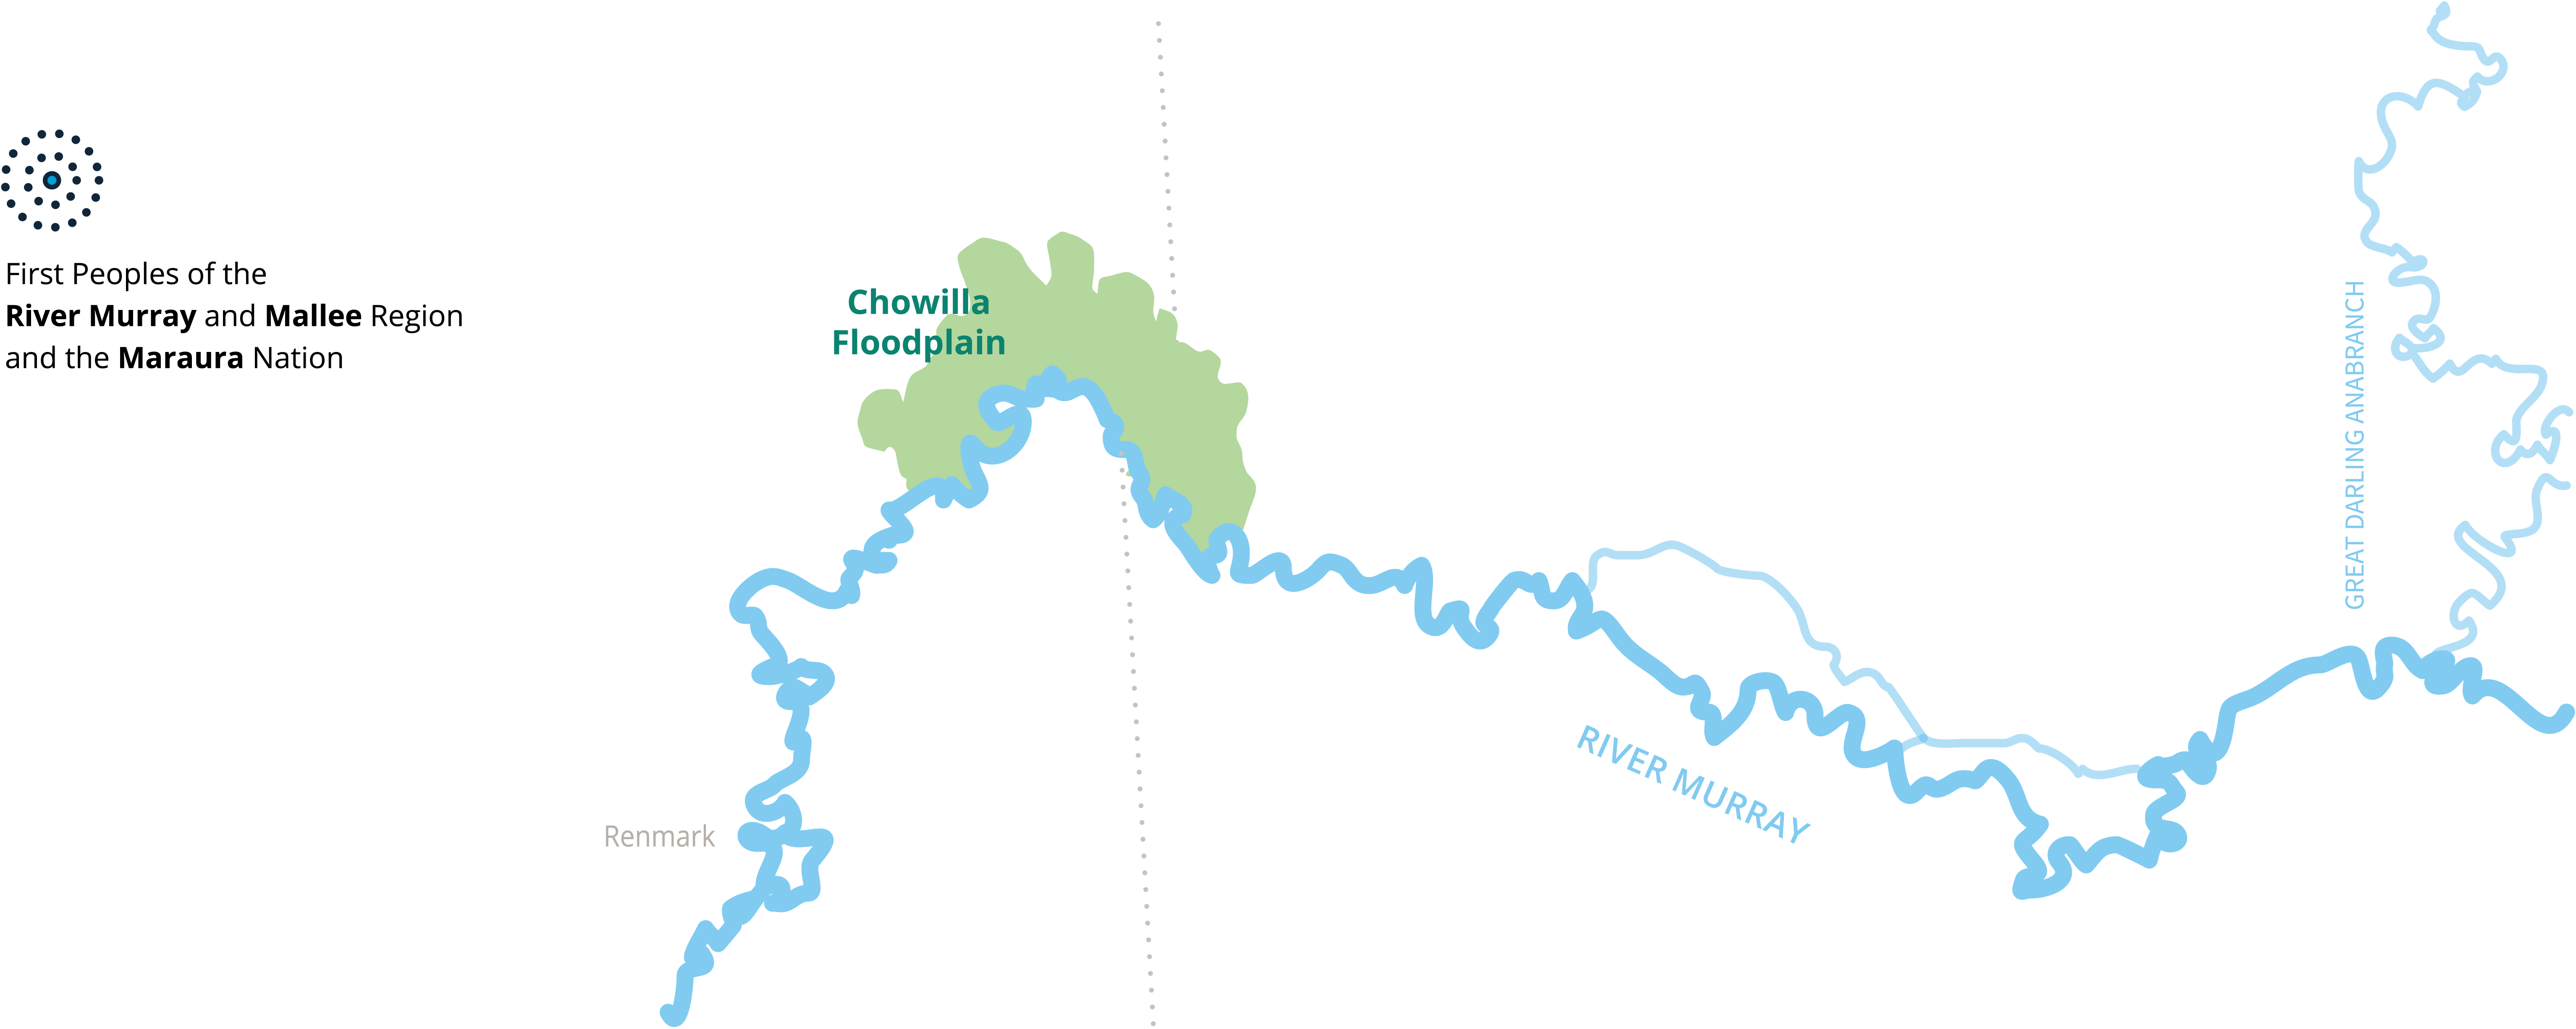 a simple map of Chowilla Floodplains